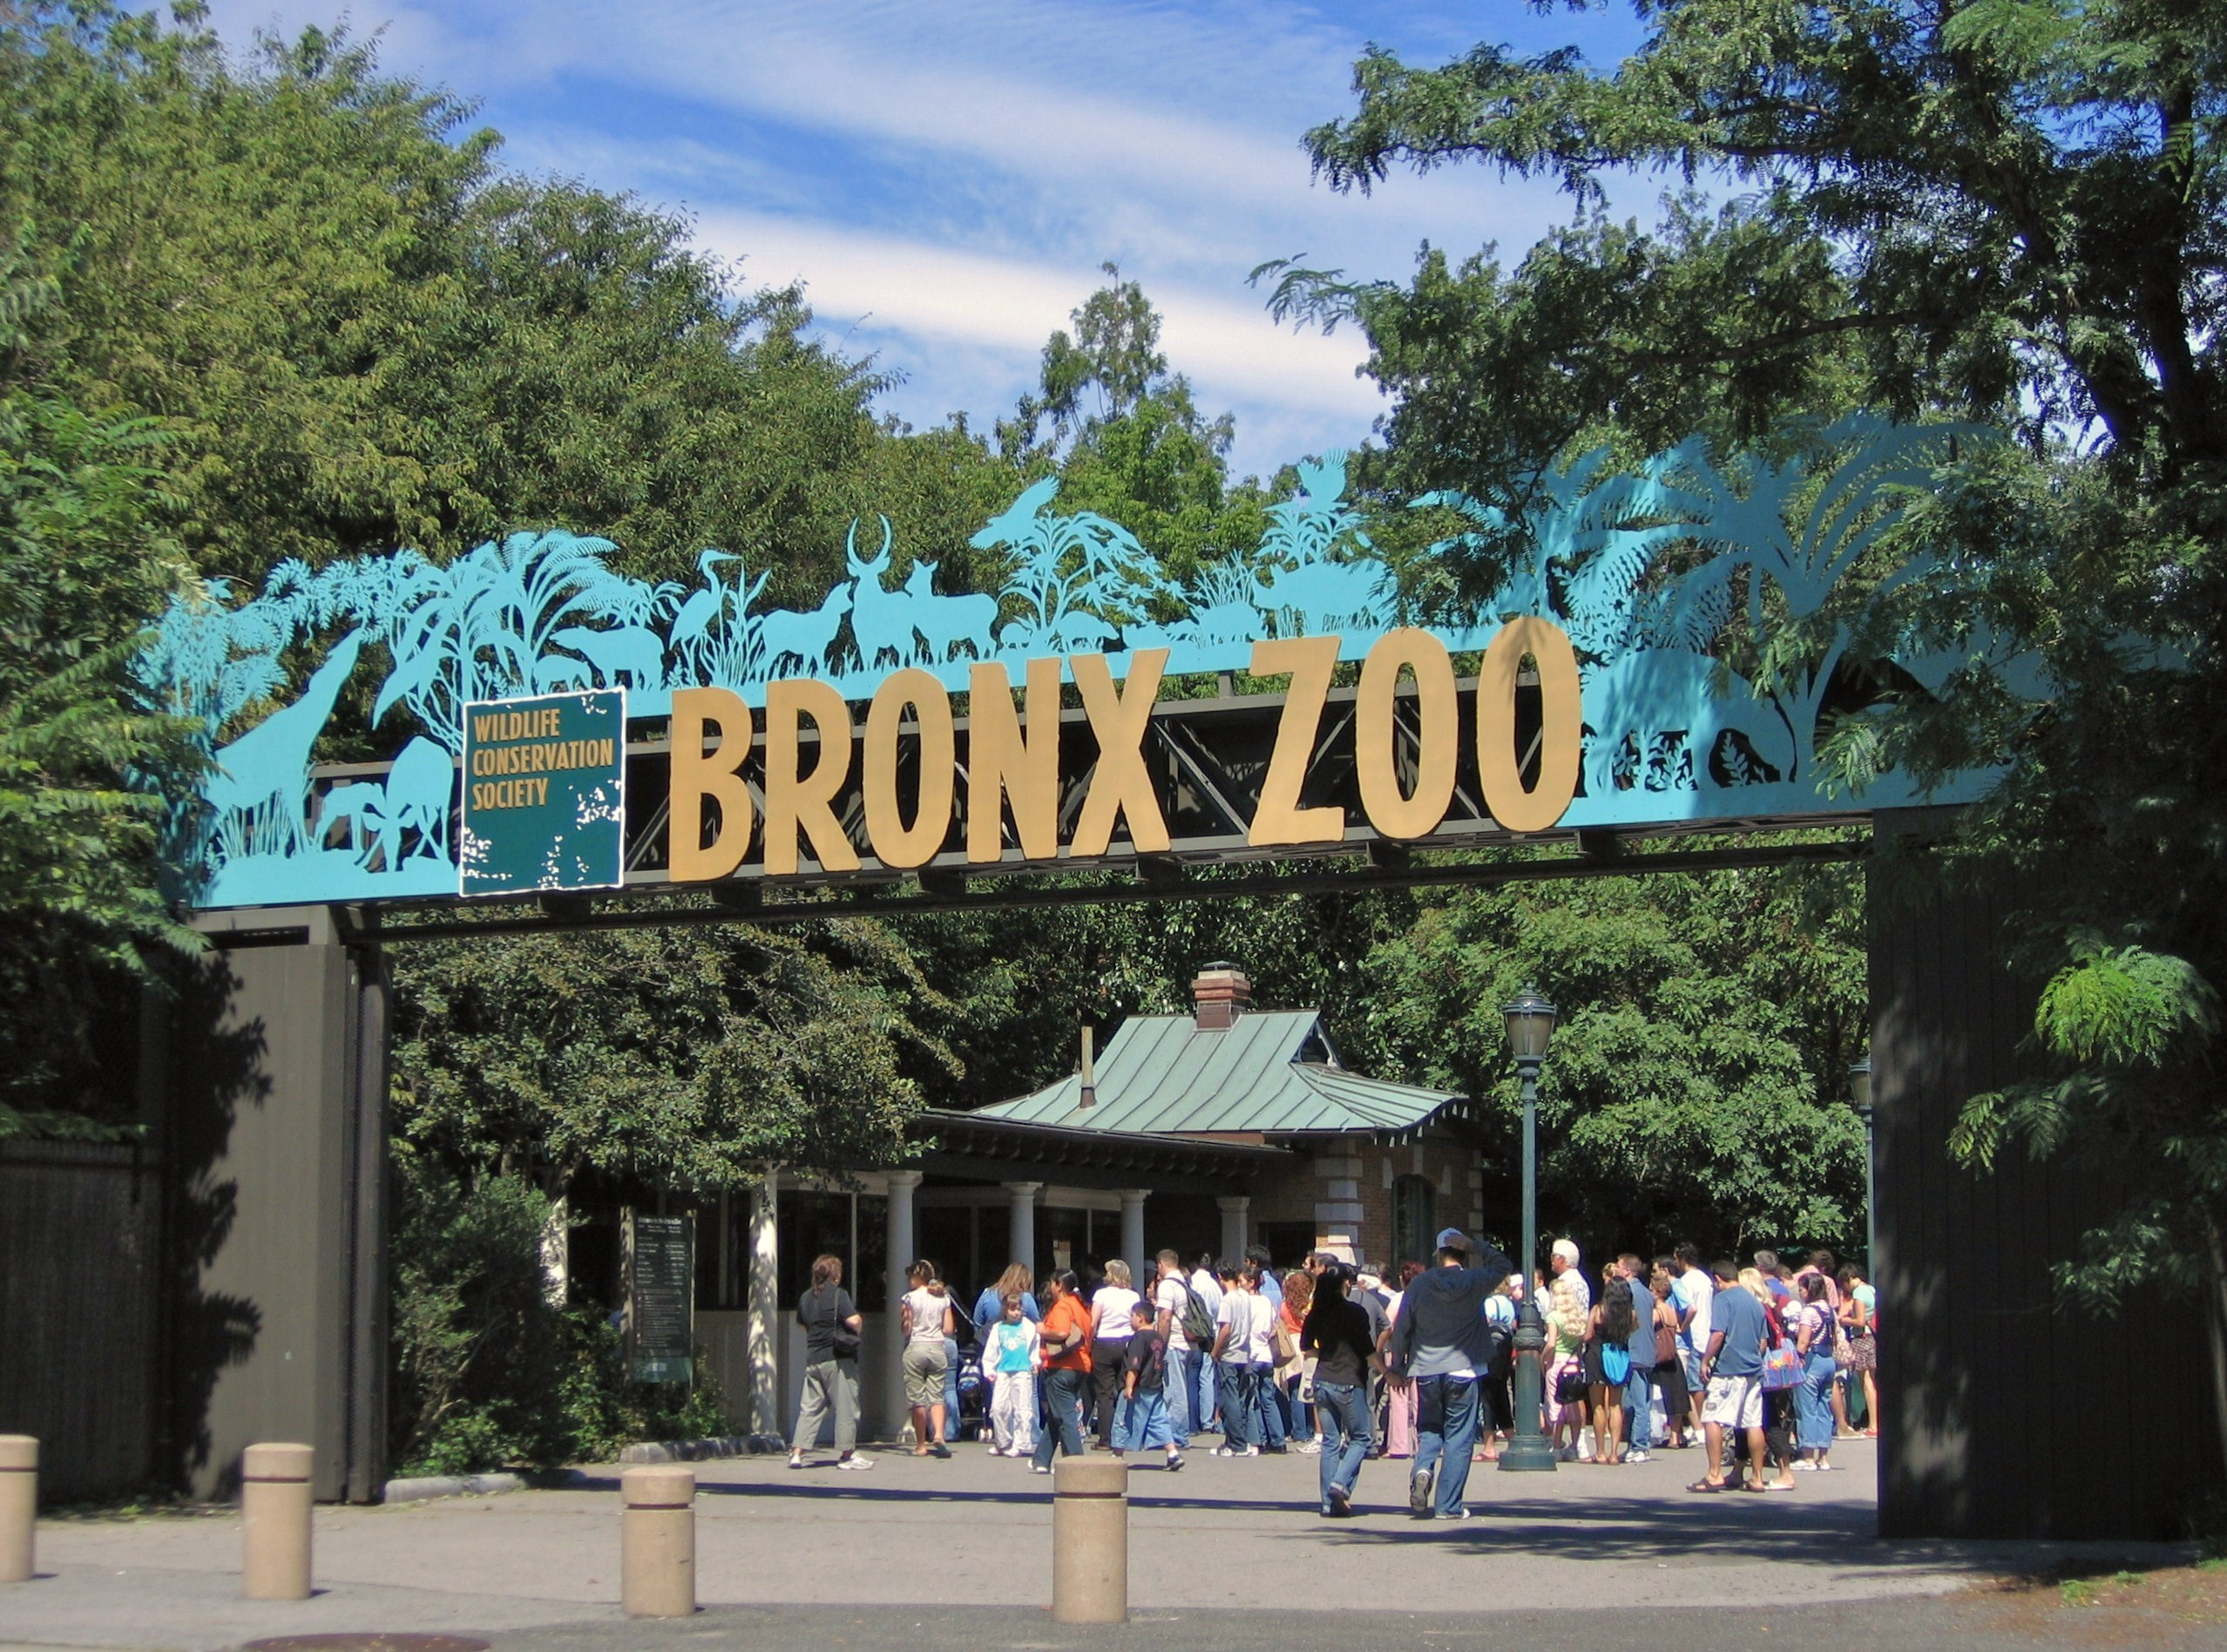 The entrance to The Bronx Zoo